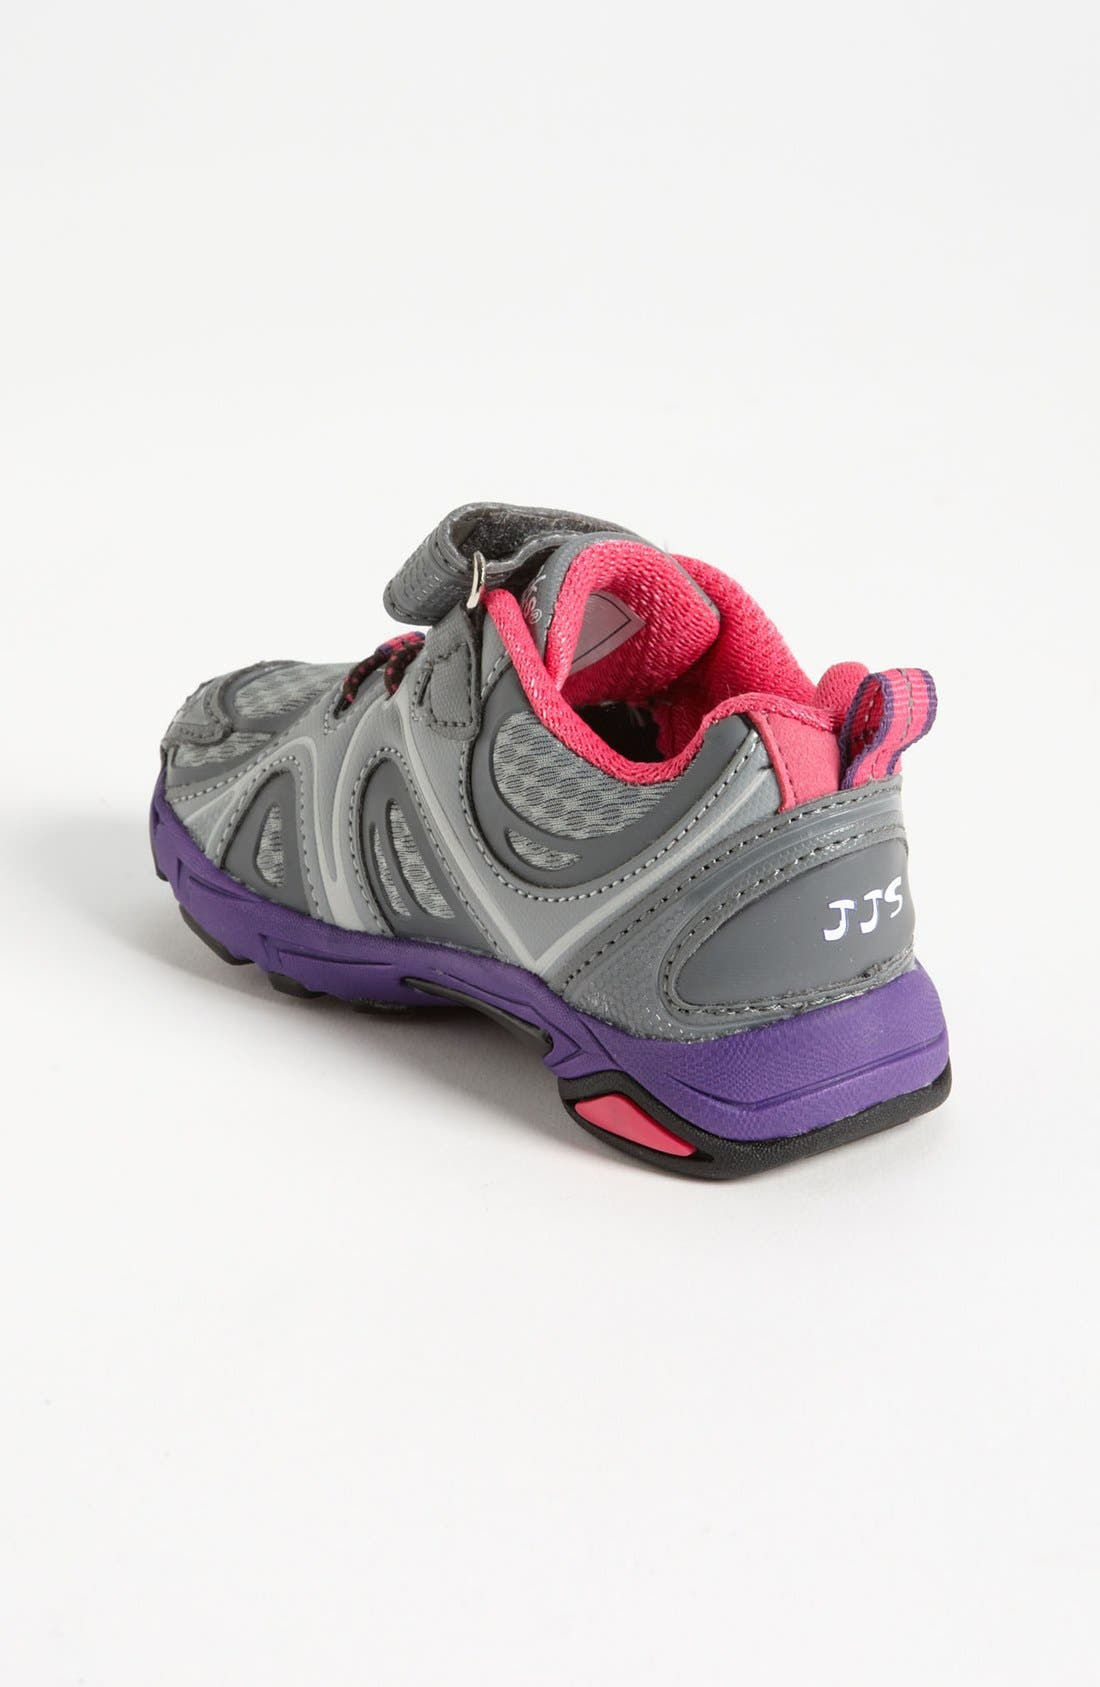 Alternate Image 2  - Jumping Jacks 'Titan' Sneaker (Walker, Toddler, Little Kid & Big Kid)